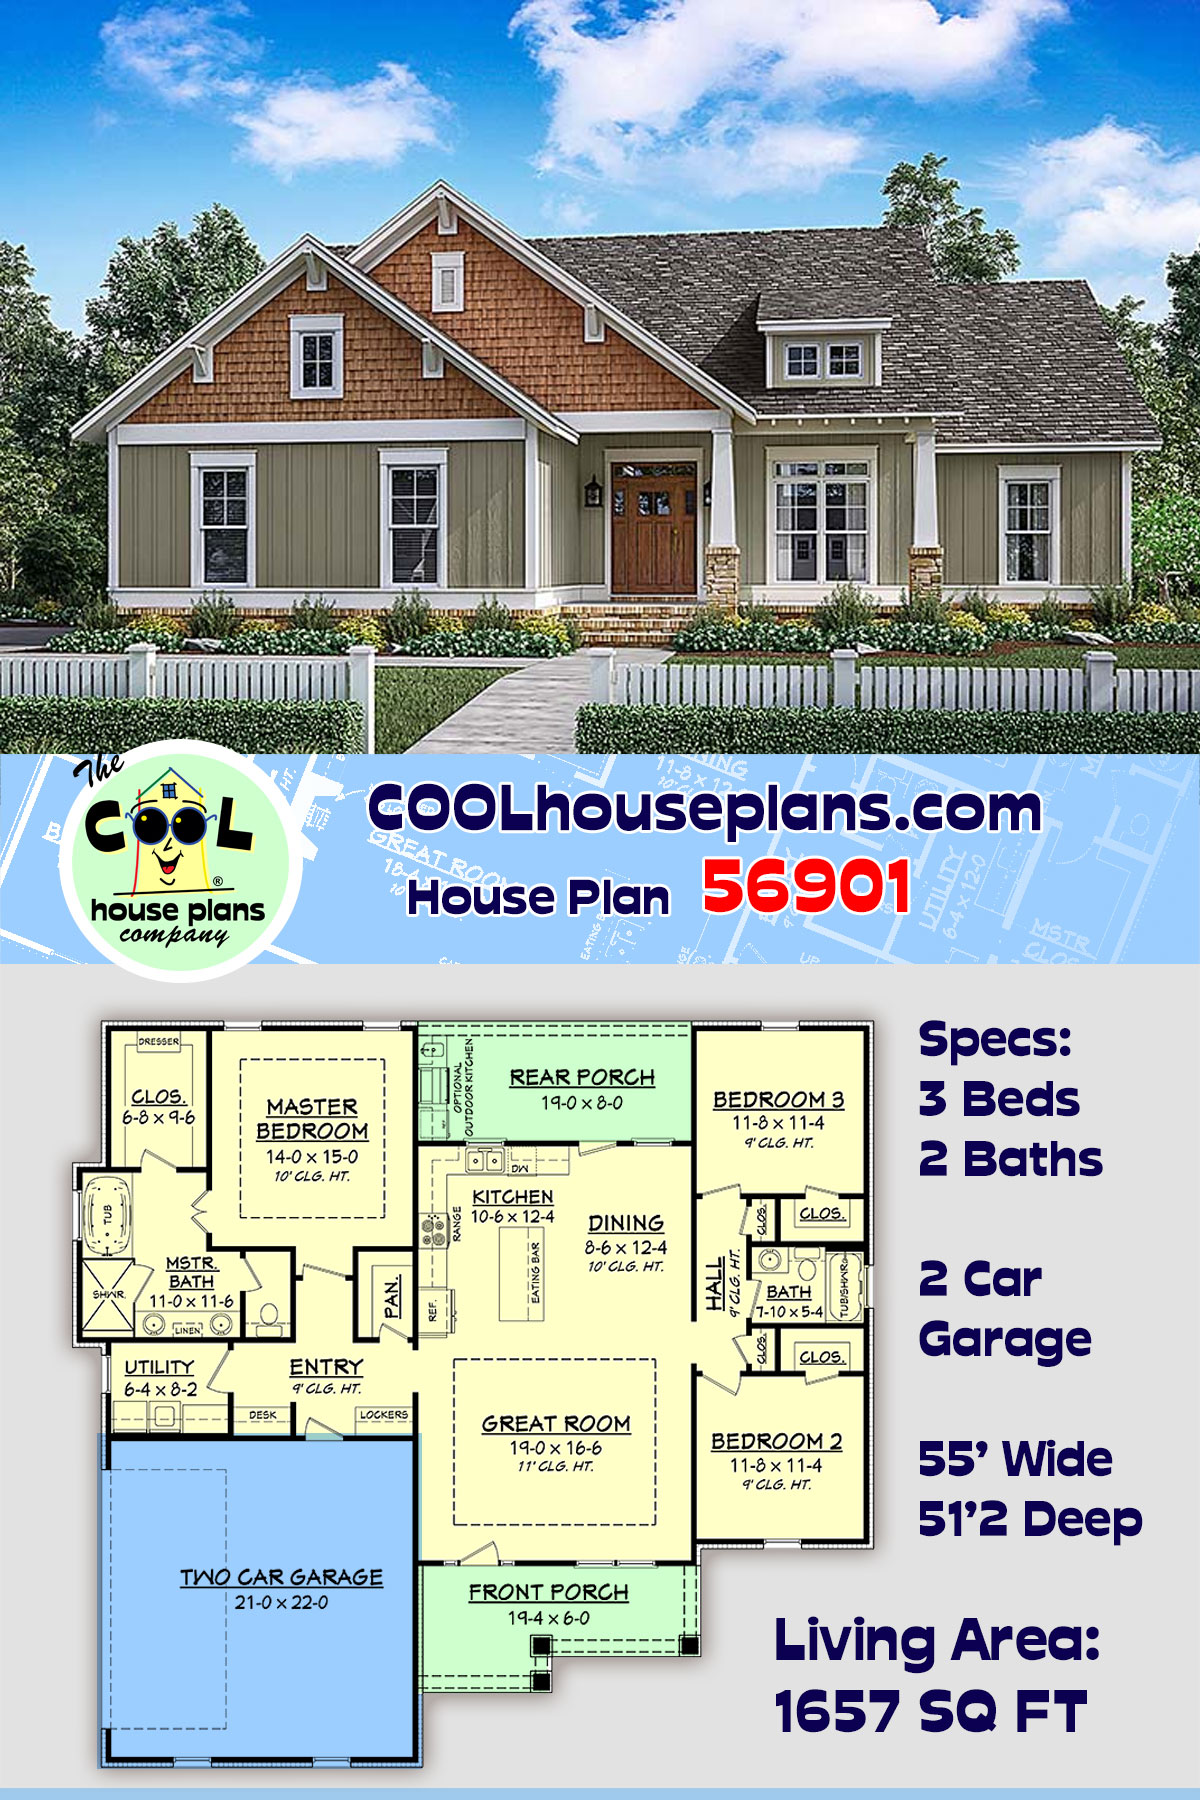 Cottage, Country, Craftsman, Traditional 2 Car Garage Plan 56901 with 3 Beds, 2 Baths